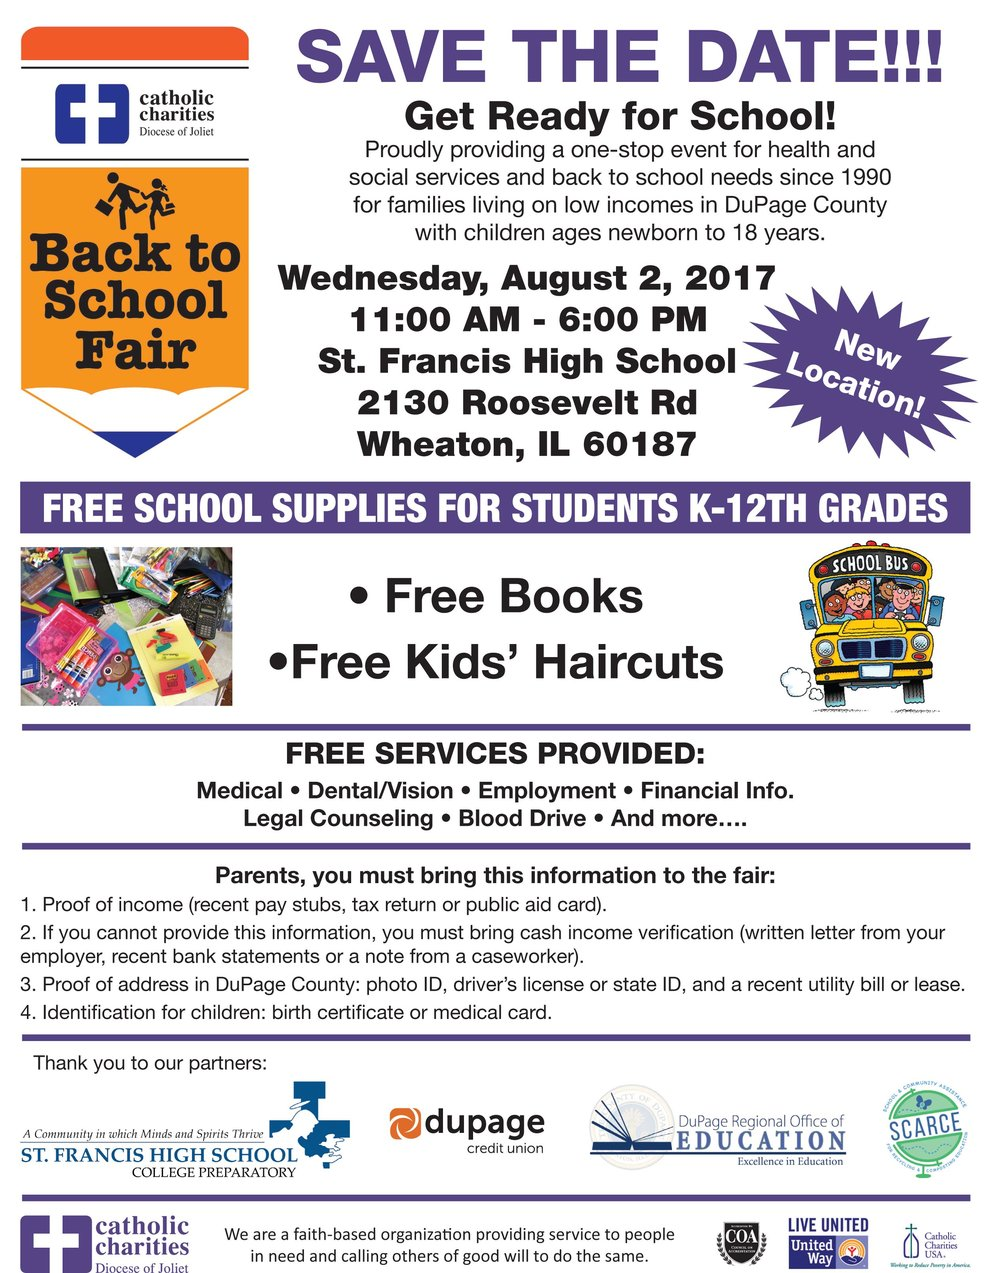 27th Annual DuPage County Back to School Fair Flyers in English and Spanish-1.jpg